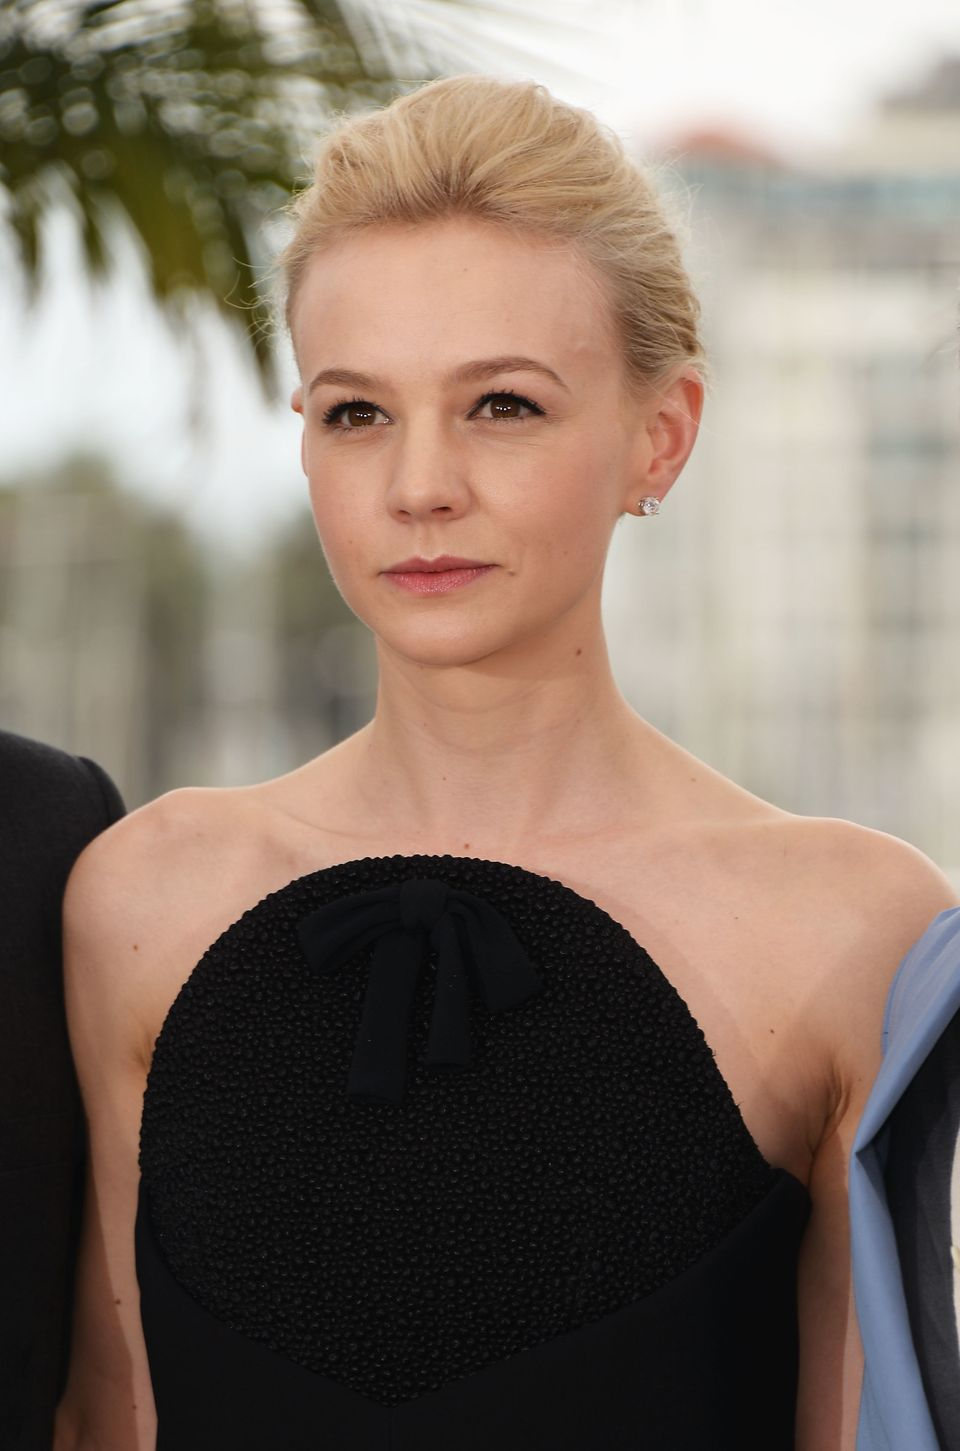 CANNES, FRANCE - MAY 15:  Actress Carey Mulligan attends the photocall for 'The Great Gatsby' at the 66th Annual Cannes Film